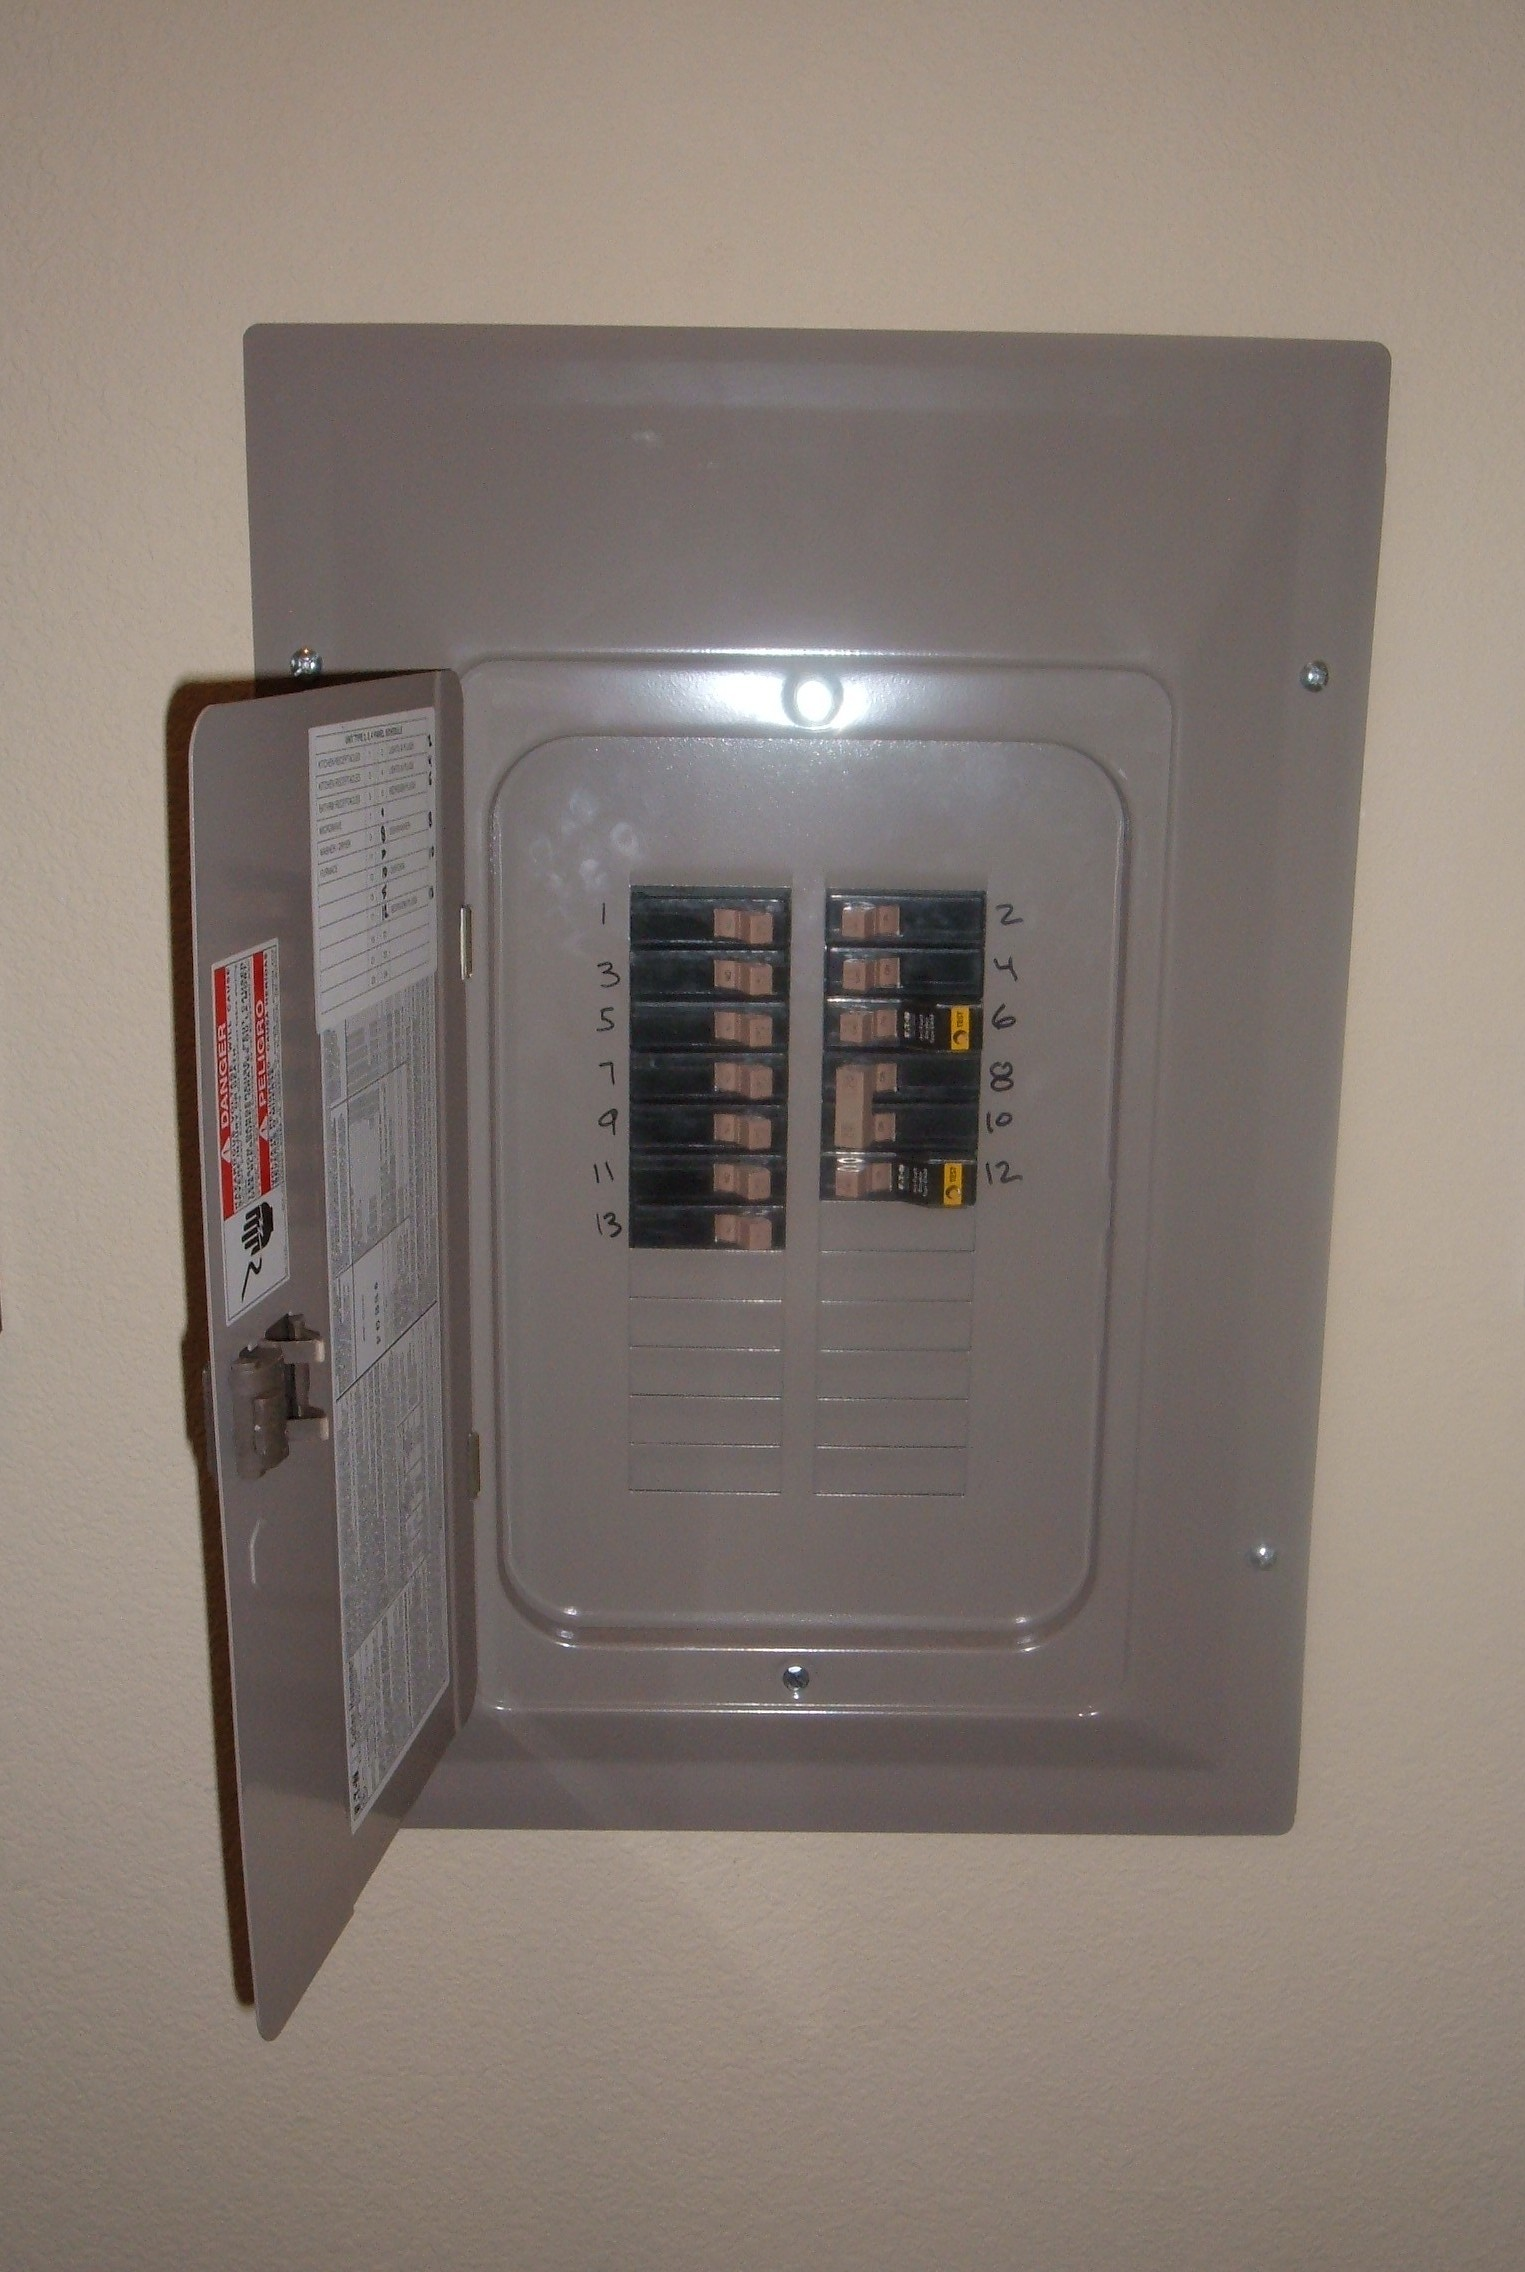 File:Eaton circuit breaker panel open.JPG